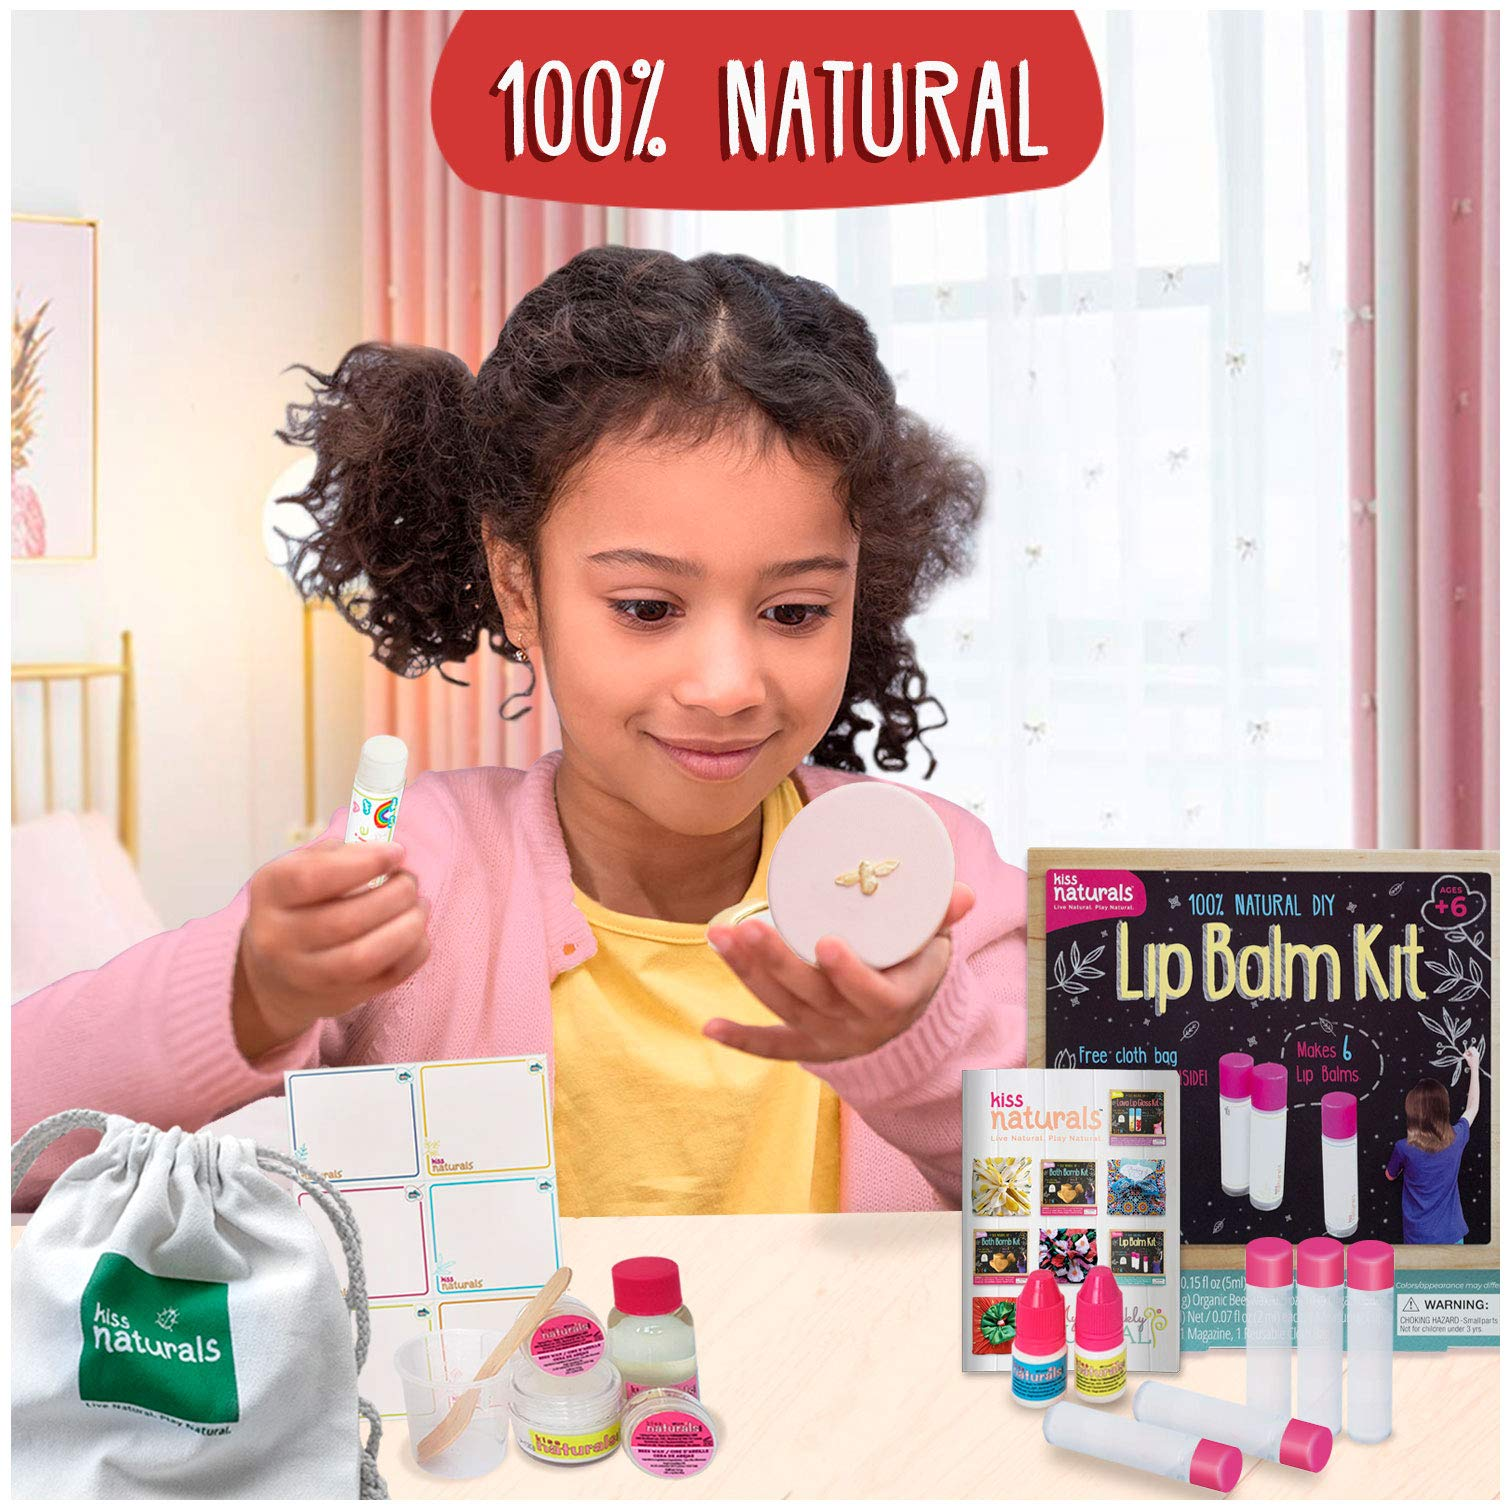 Kiss Naturals Kids Lip Balm Kit for Girls - 100% Organic Lip Balm Making Kit - Make Your Own Crafts for Girls Ages 8-12 - All Natural and Made in North America